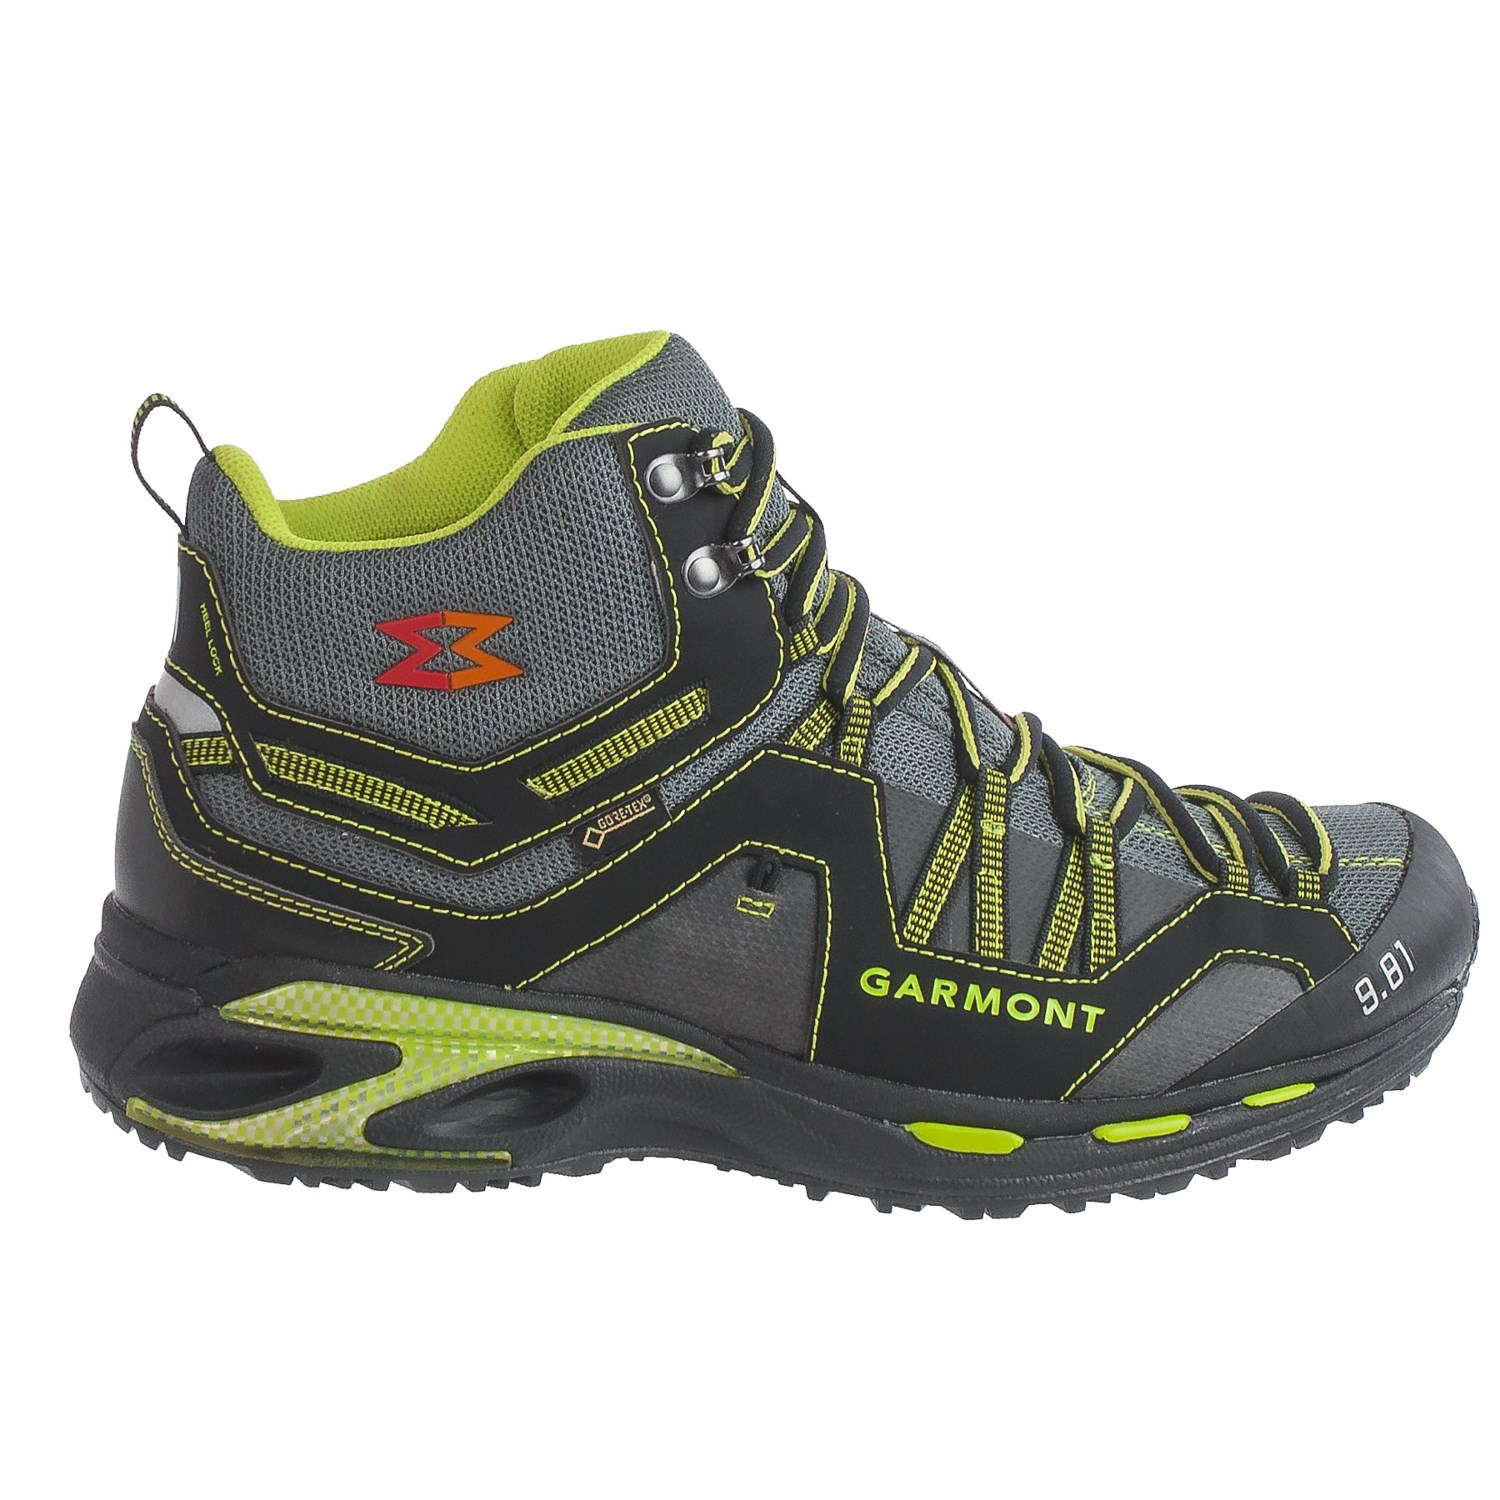 New Asolo Stynger Gore-Tex Boot - Womenu0026#39;s | Backcountry.com